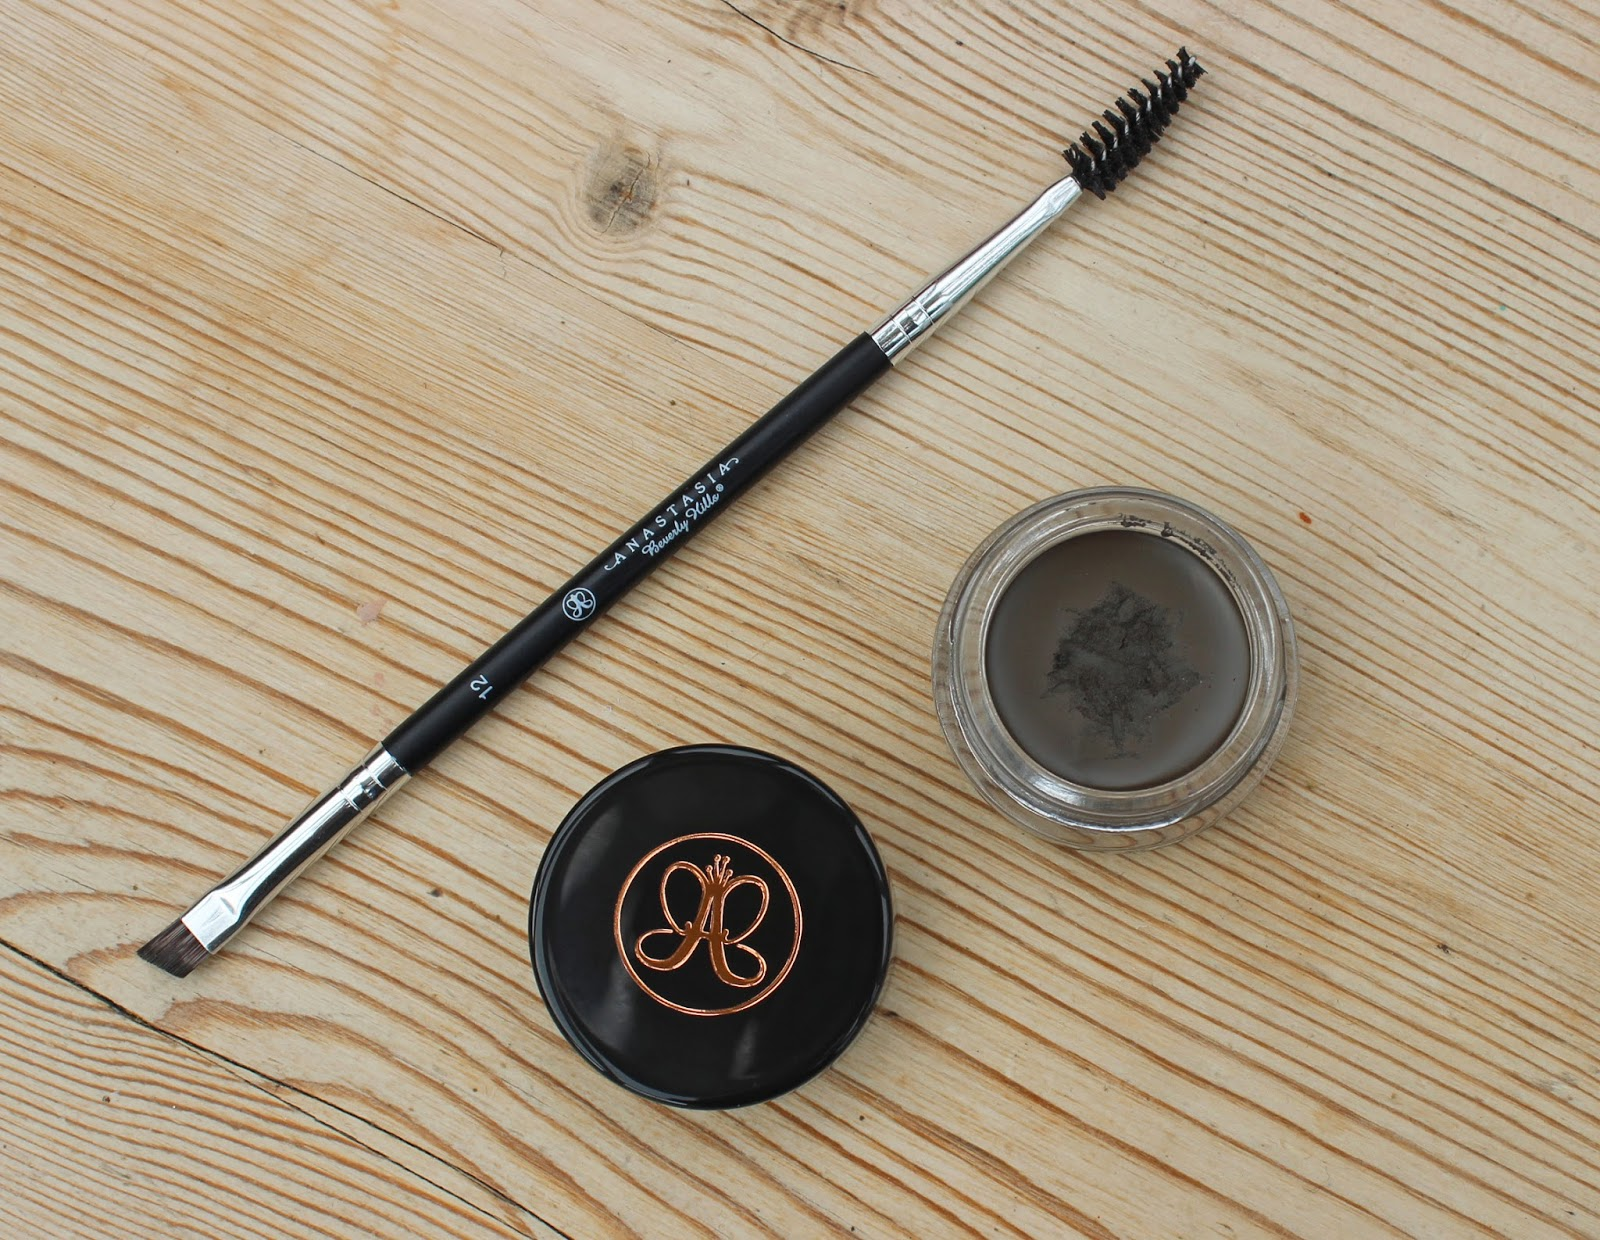 beauty le chic new brow hero anastasia beverly hills dipbrow pomade. Black Bedroom Furniture Sets. Home Design Ideas